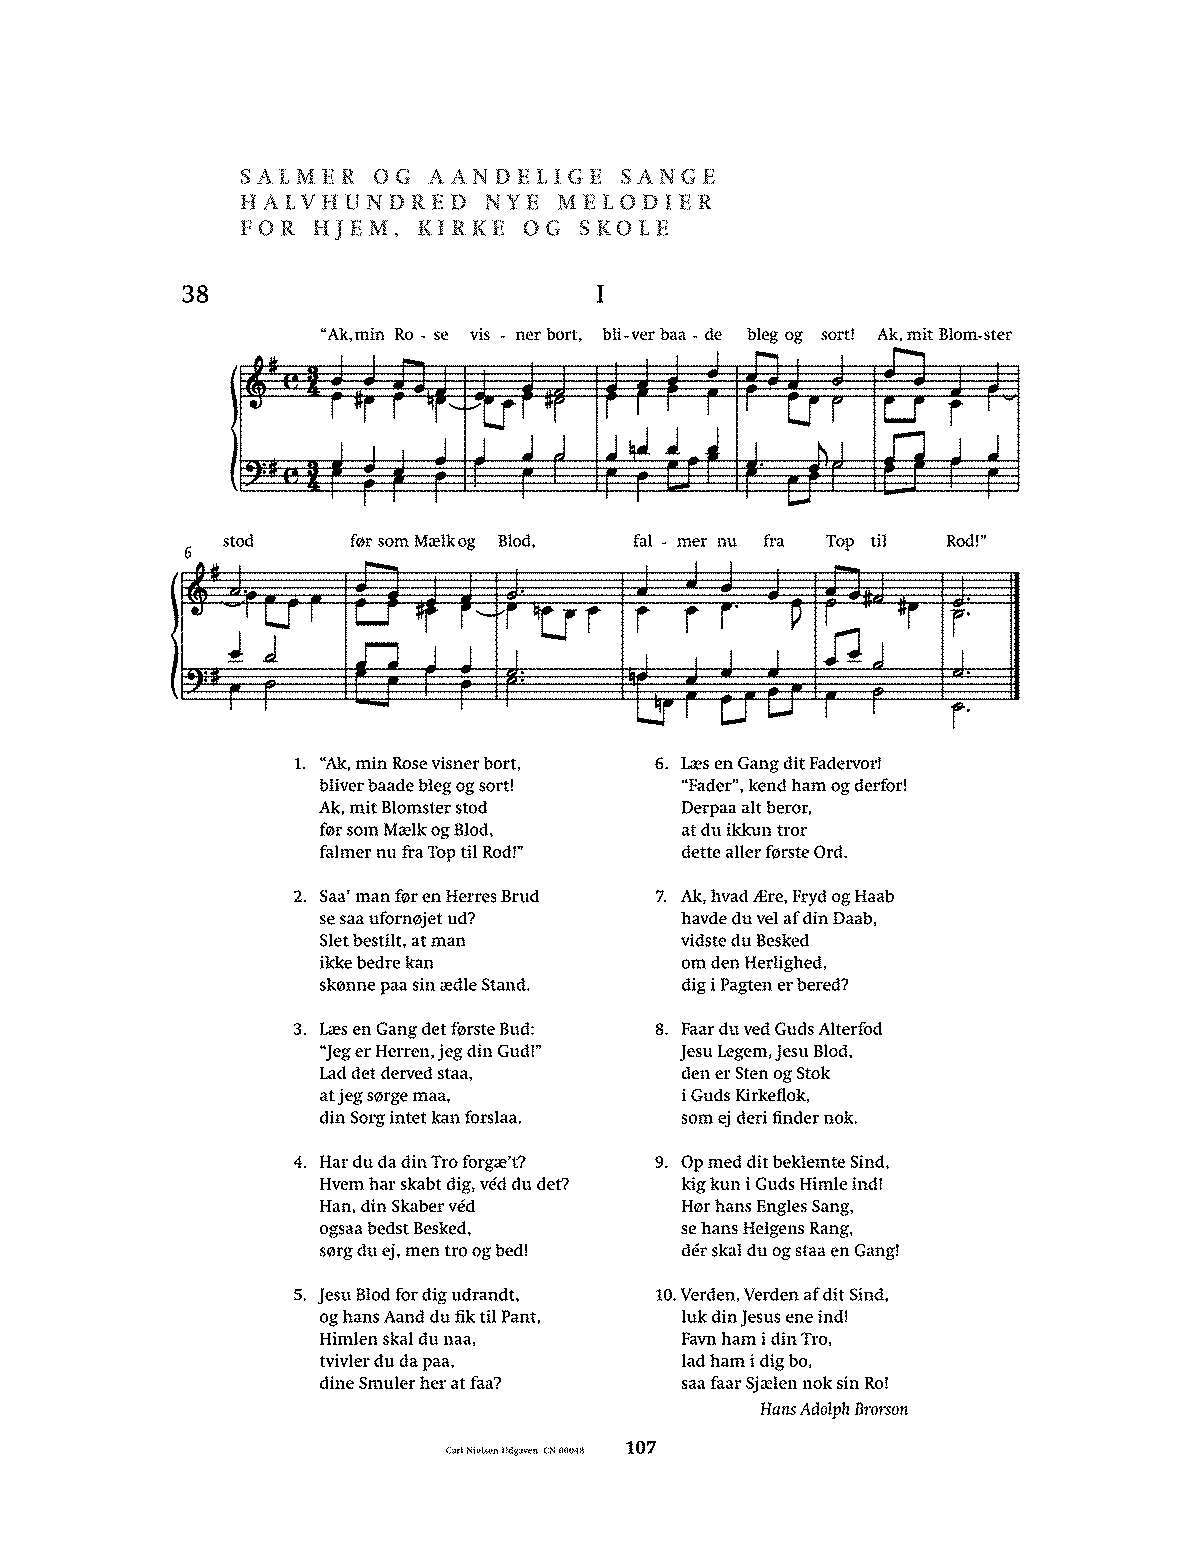 PMLP07204-9. Hymns and Spiritual Songs.pdf